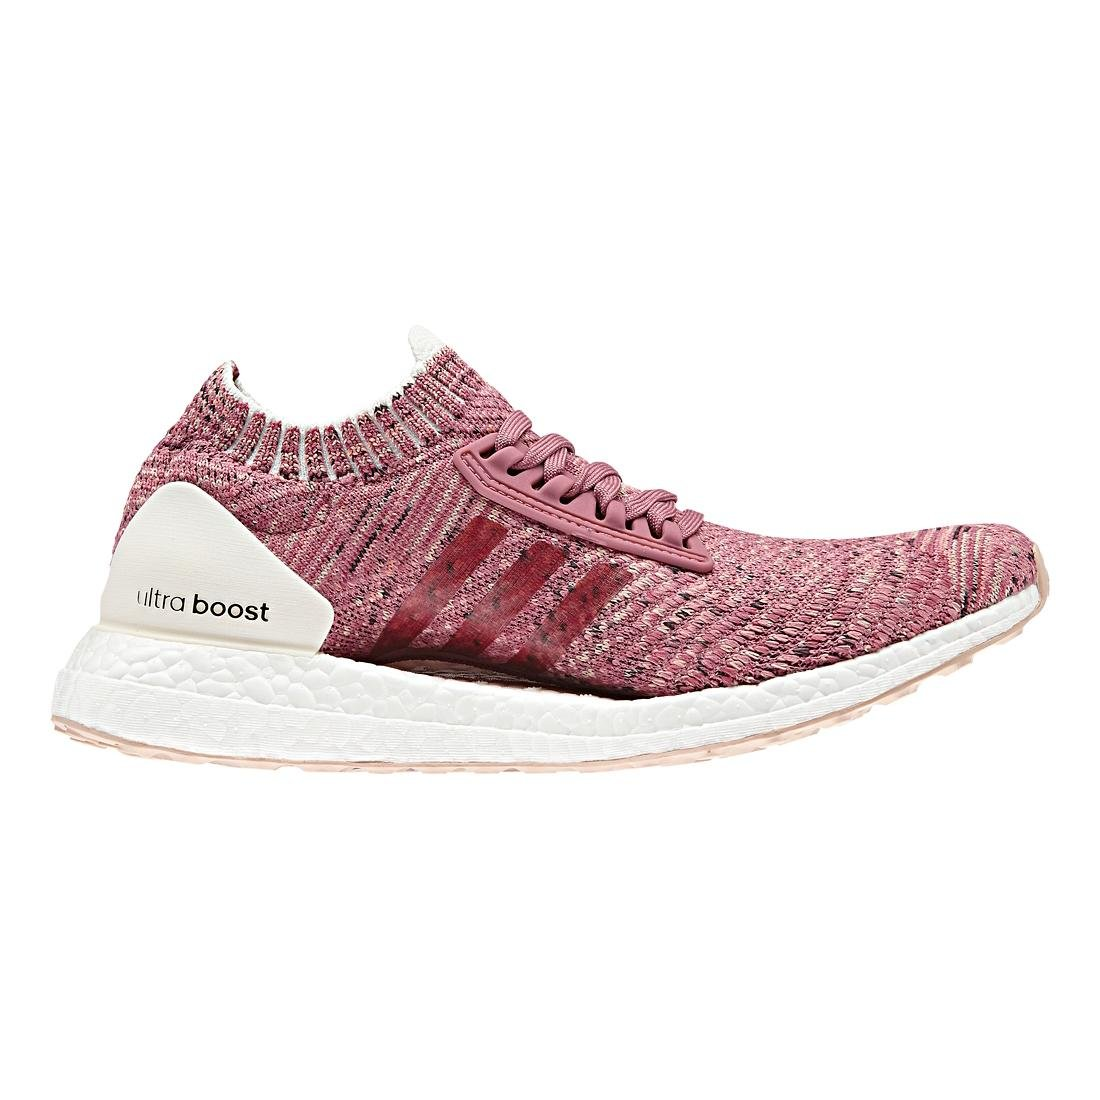 buy online 1d52a 0e699 Amazon.com   adidas Ultraboost X Shoe - Women s Running   Road Running